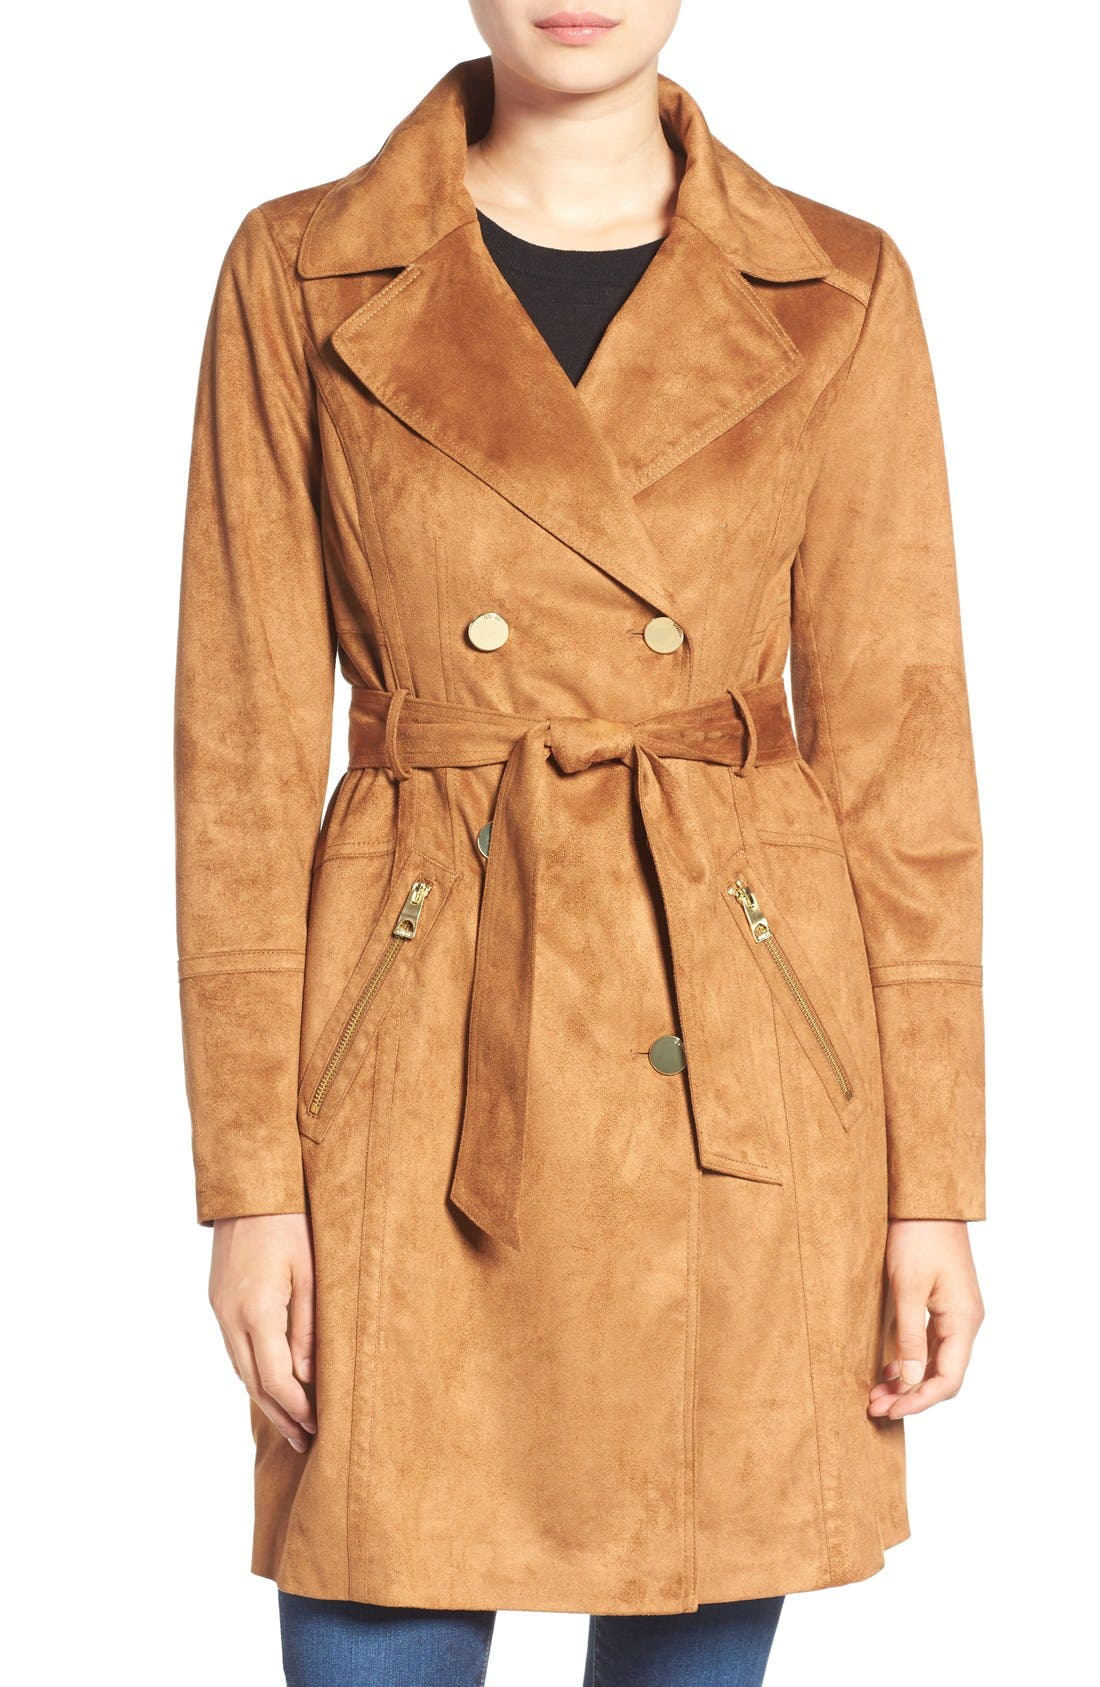 Alternate Image 1 Selected - GUESS Faux Suede Double Breasted Trench Coat